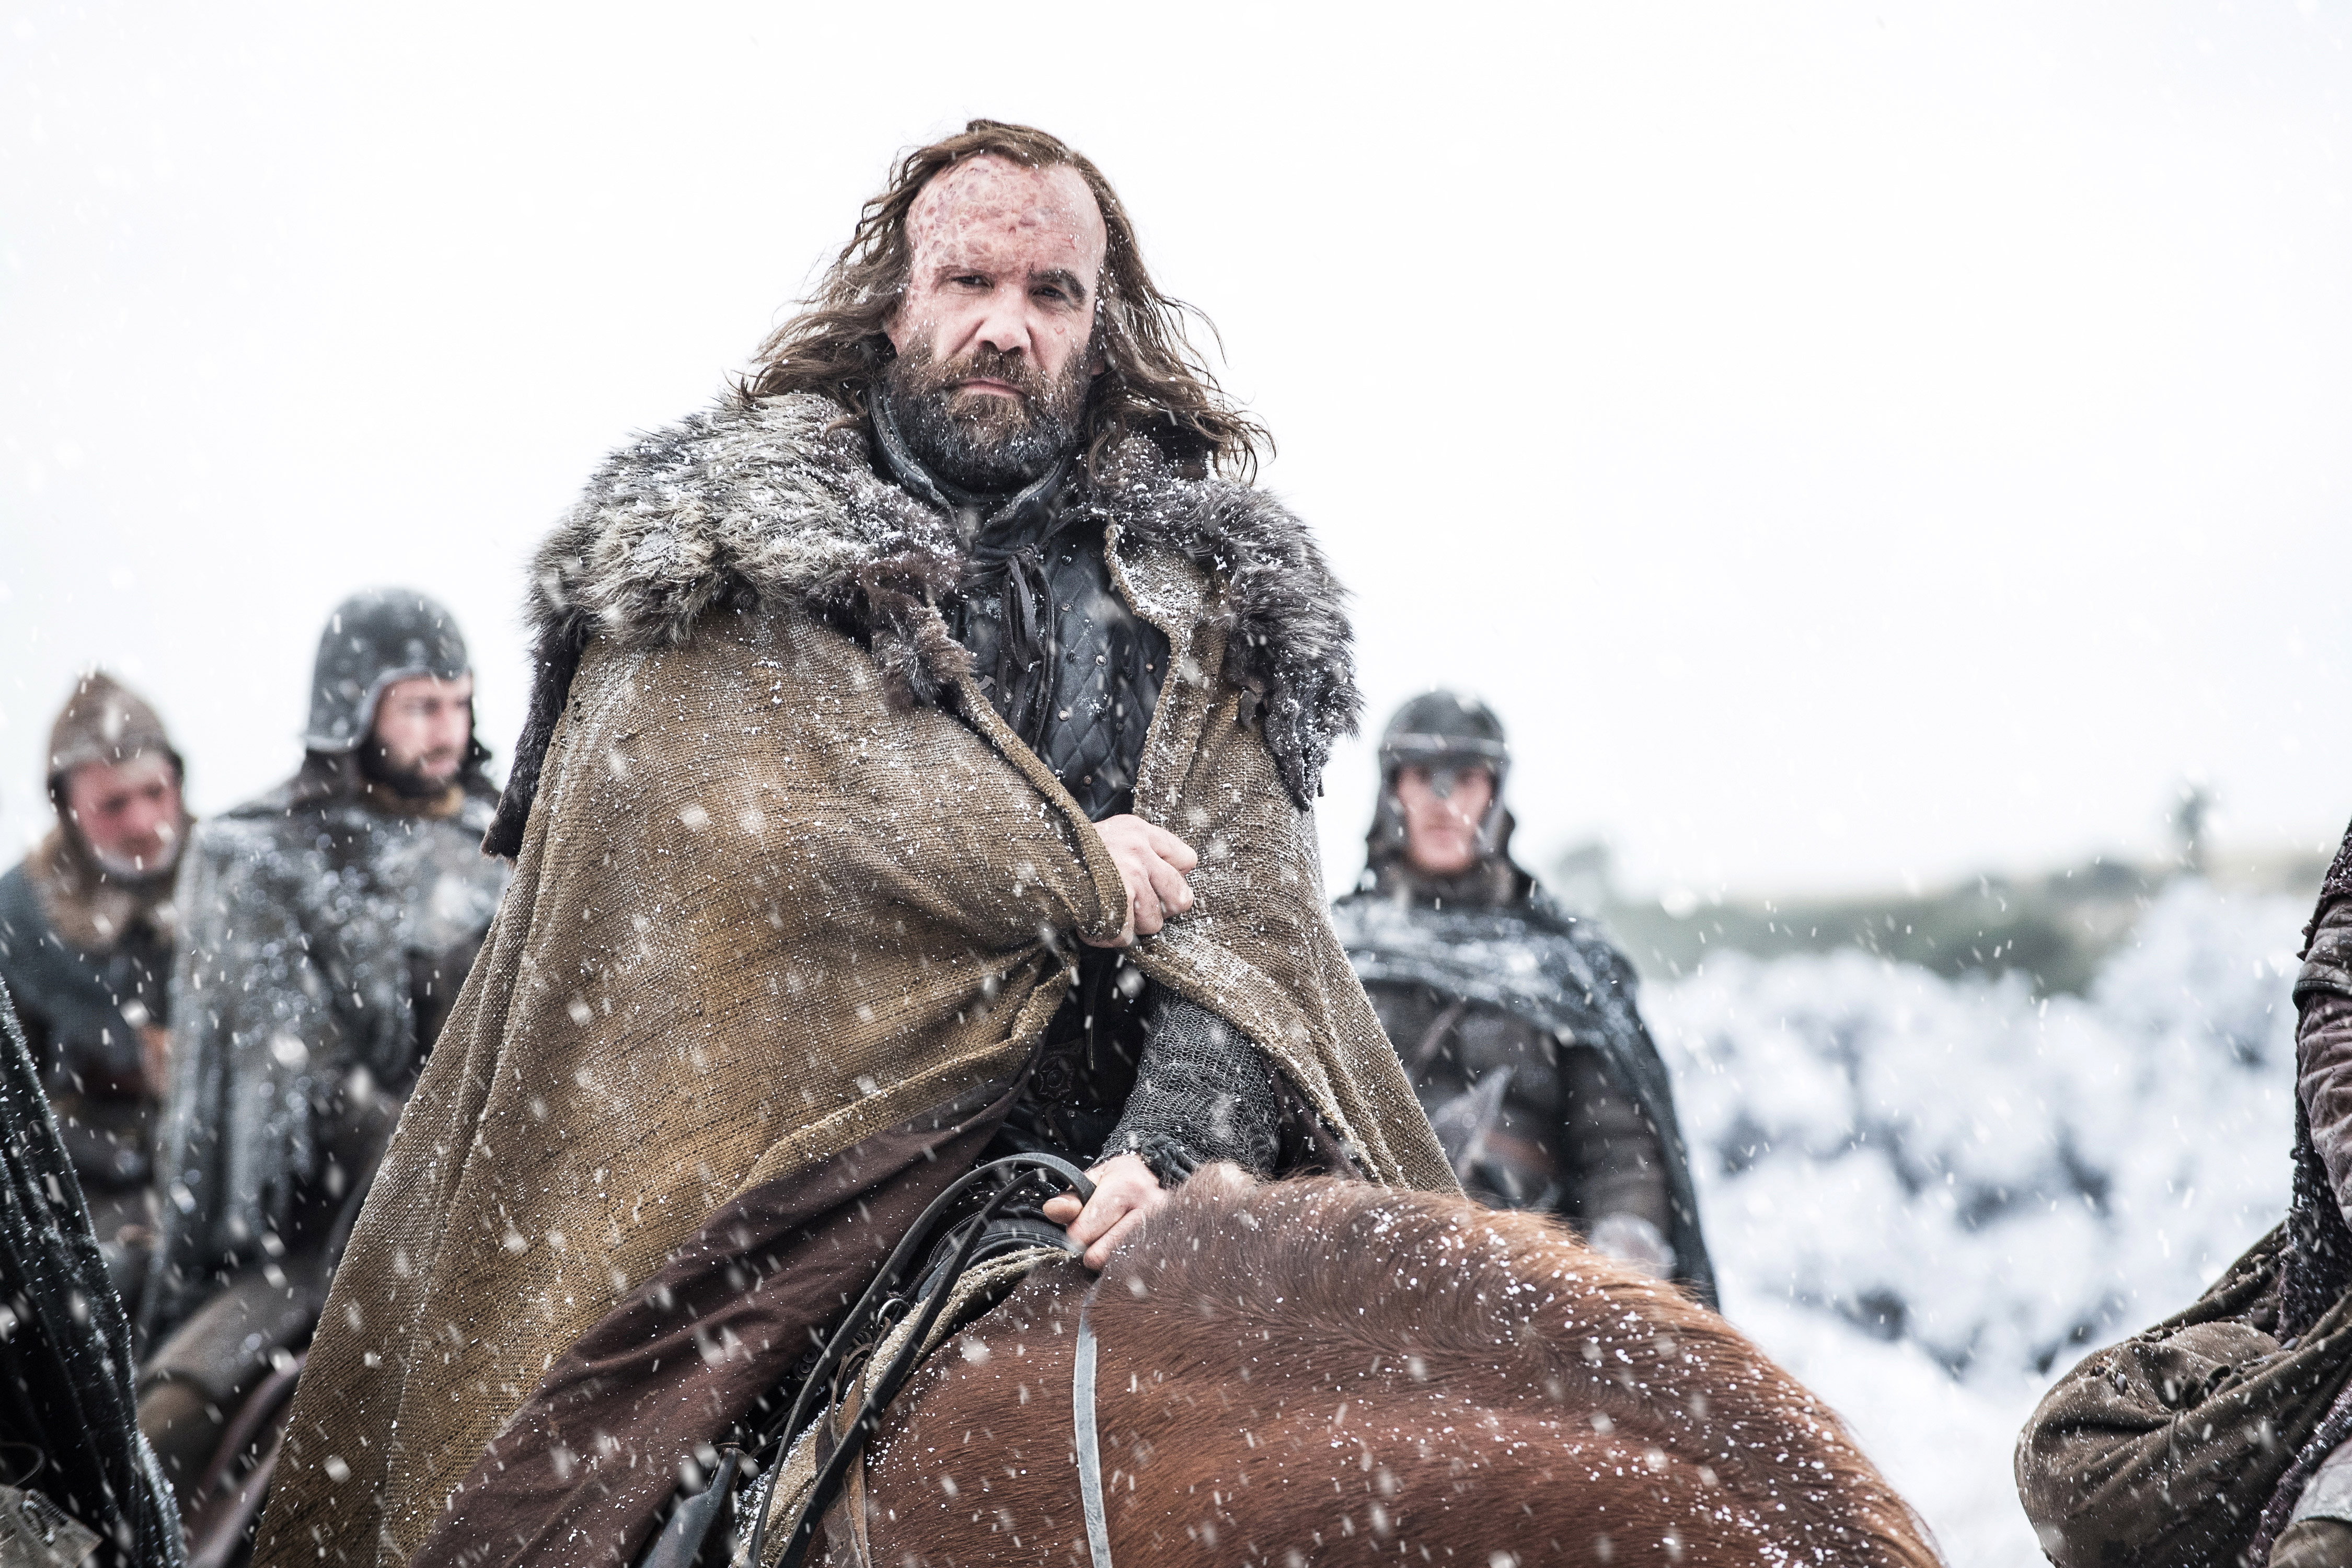 The Hound Game Of Thrones Season 7 Hd Tv Shows 4k Wallpapers